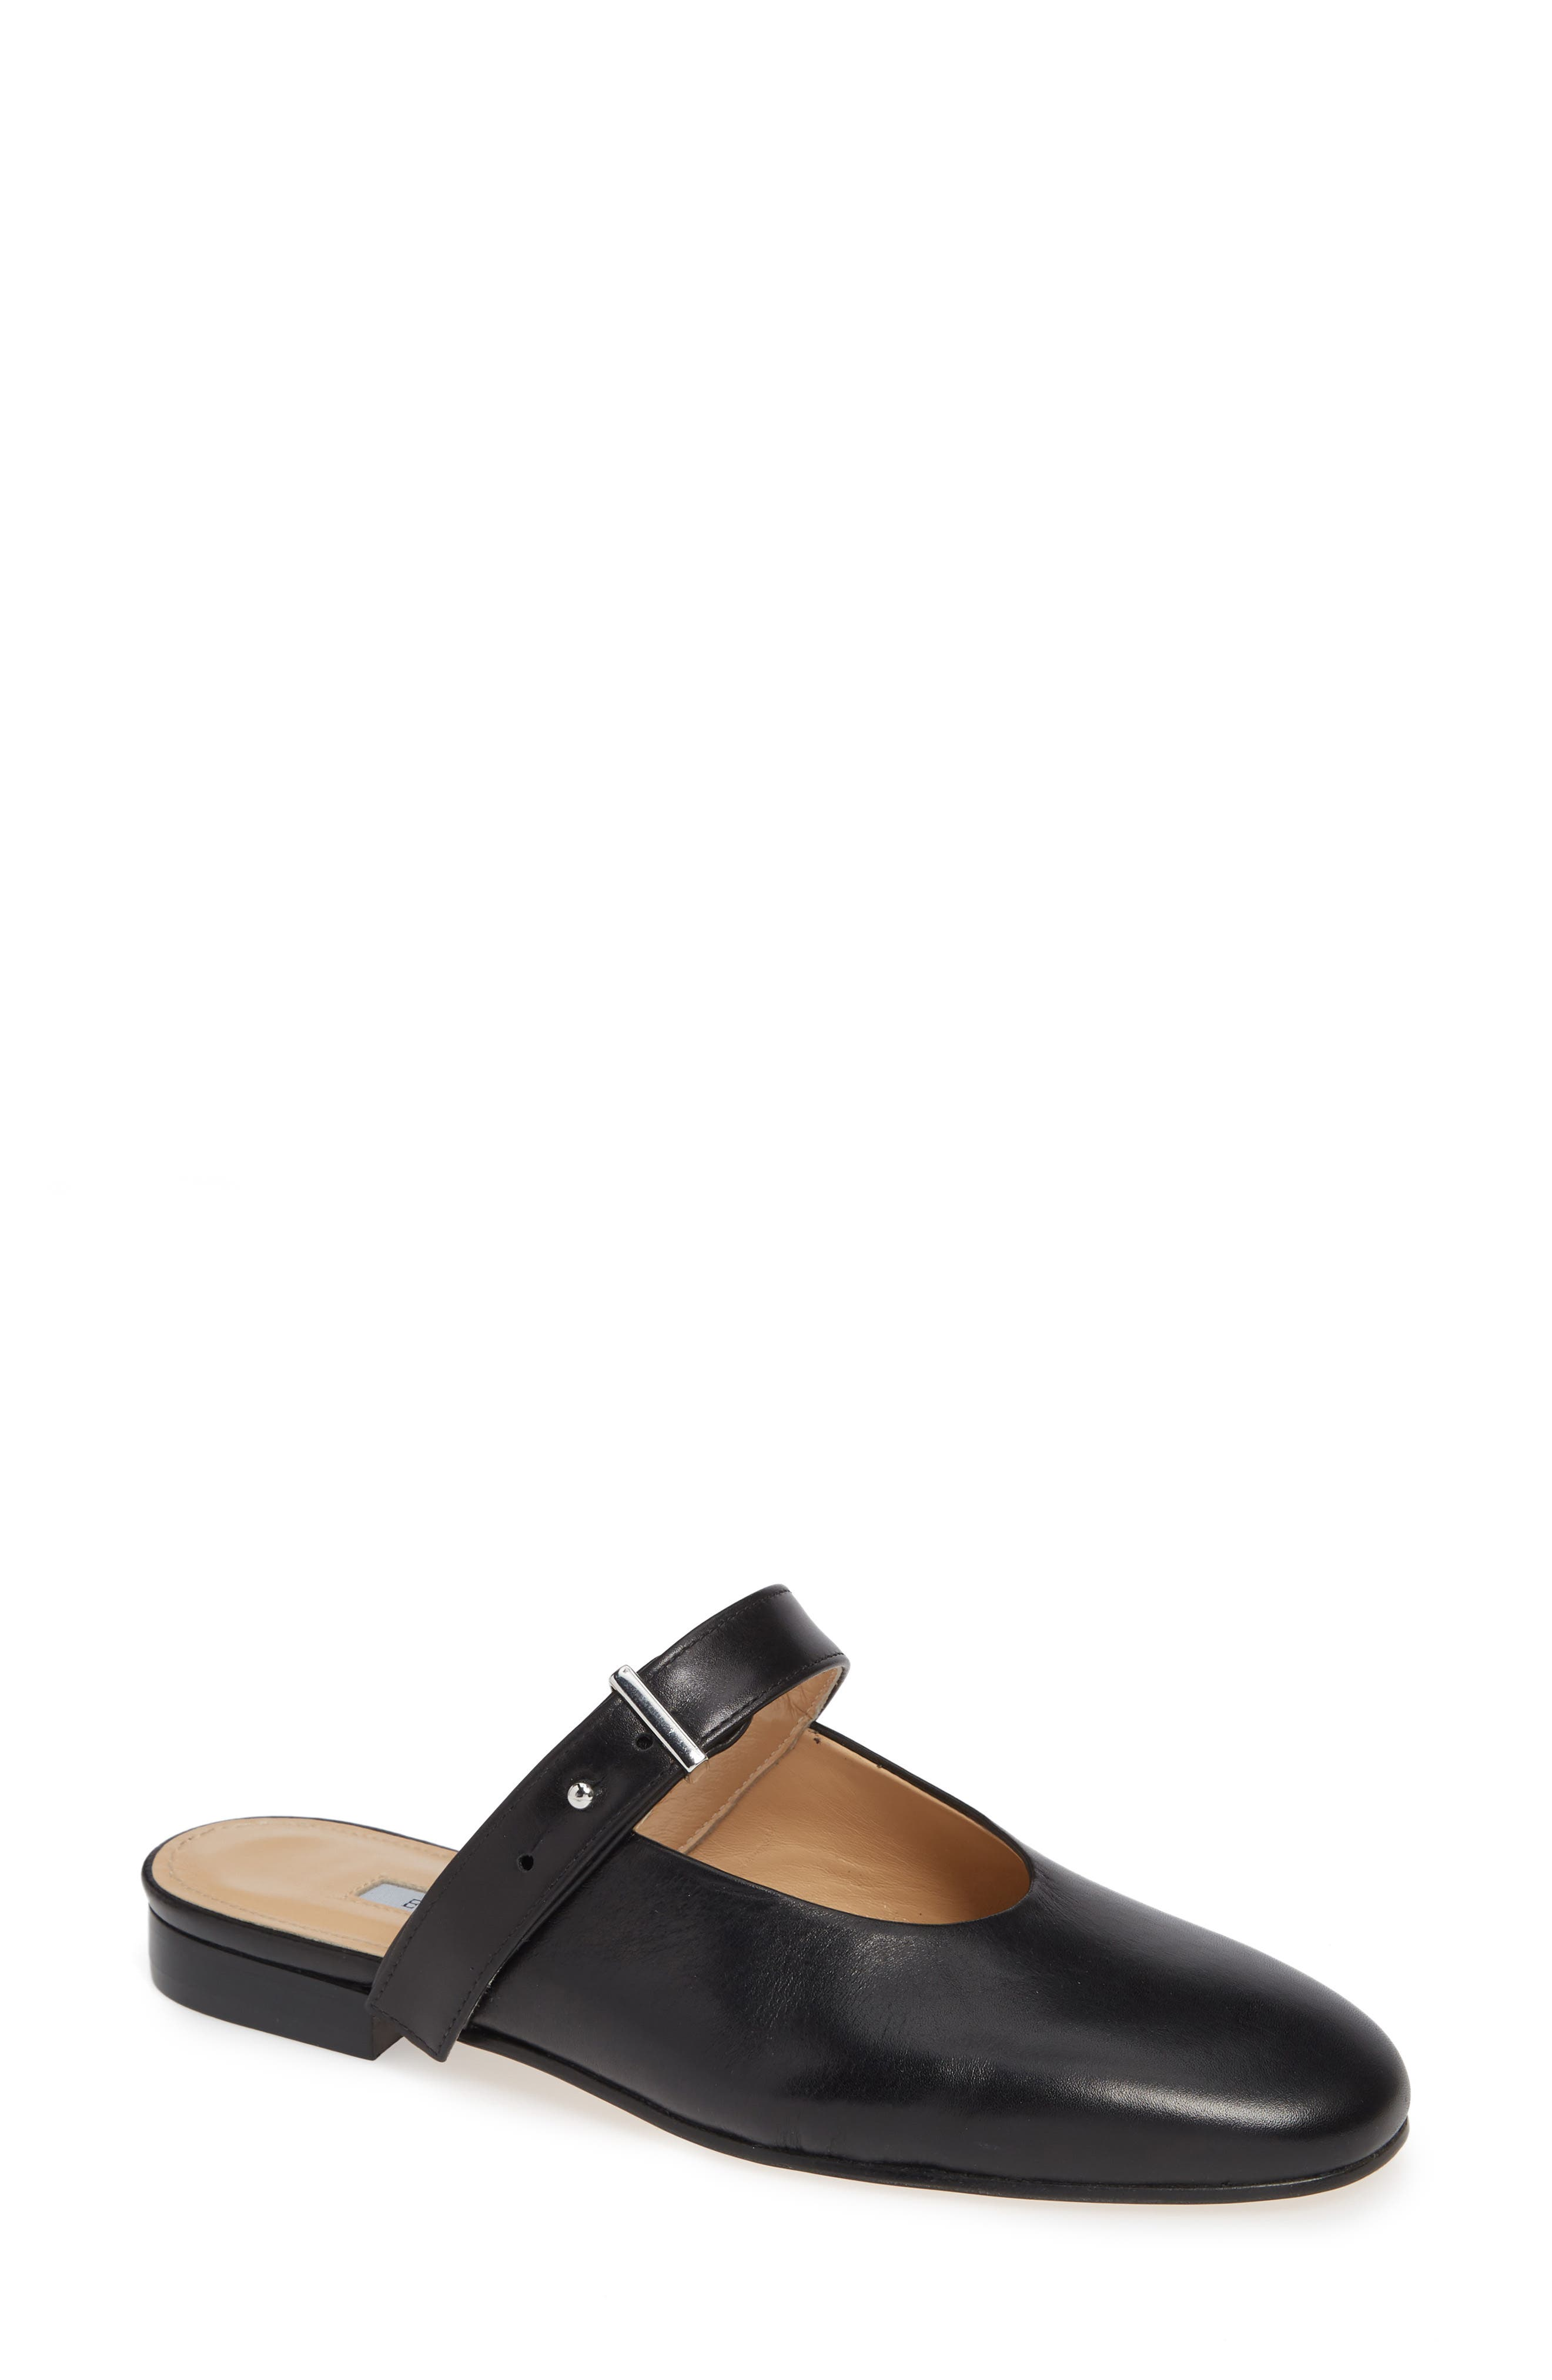 Certo Mary Jane Mule,                         Main,                         color, BLACK LEATHER